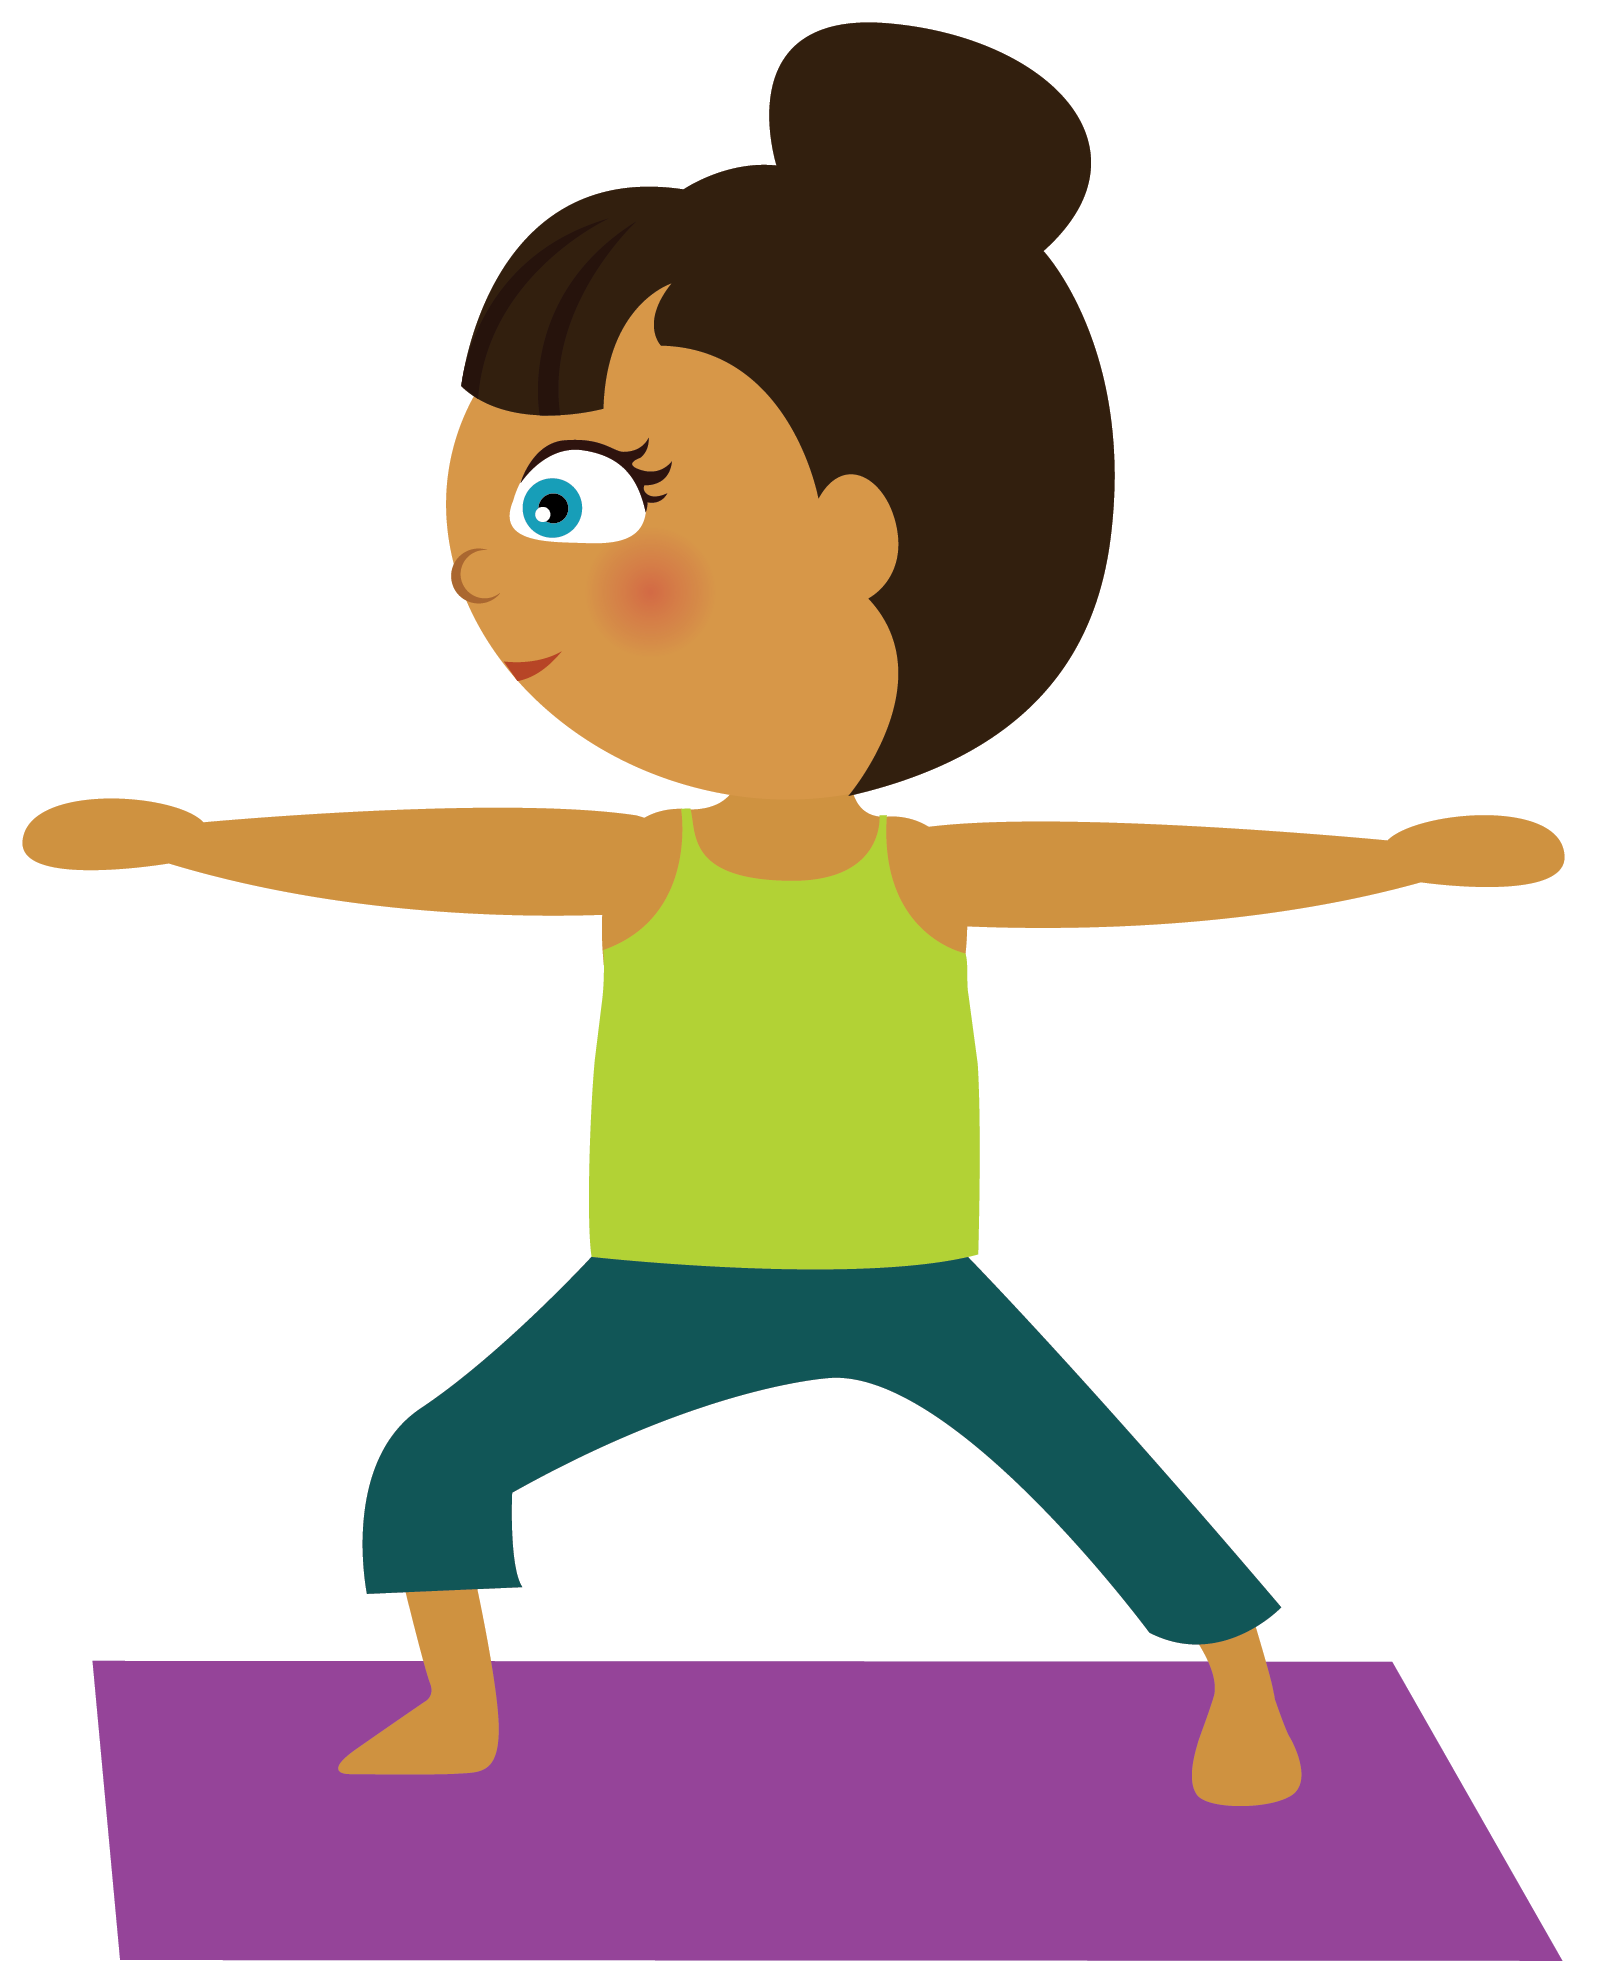 Workshop and training littlefeet. House clipart kid